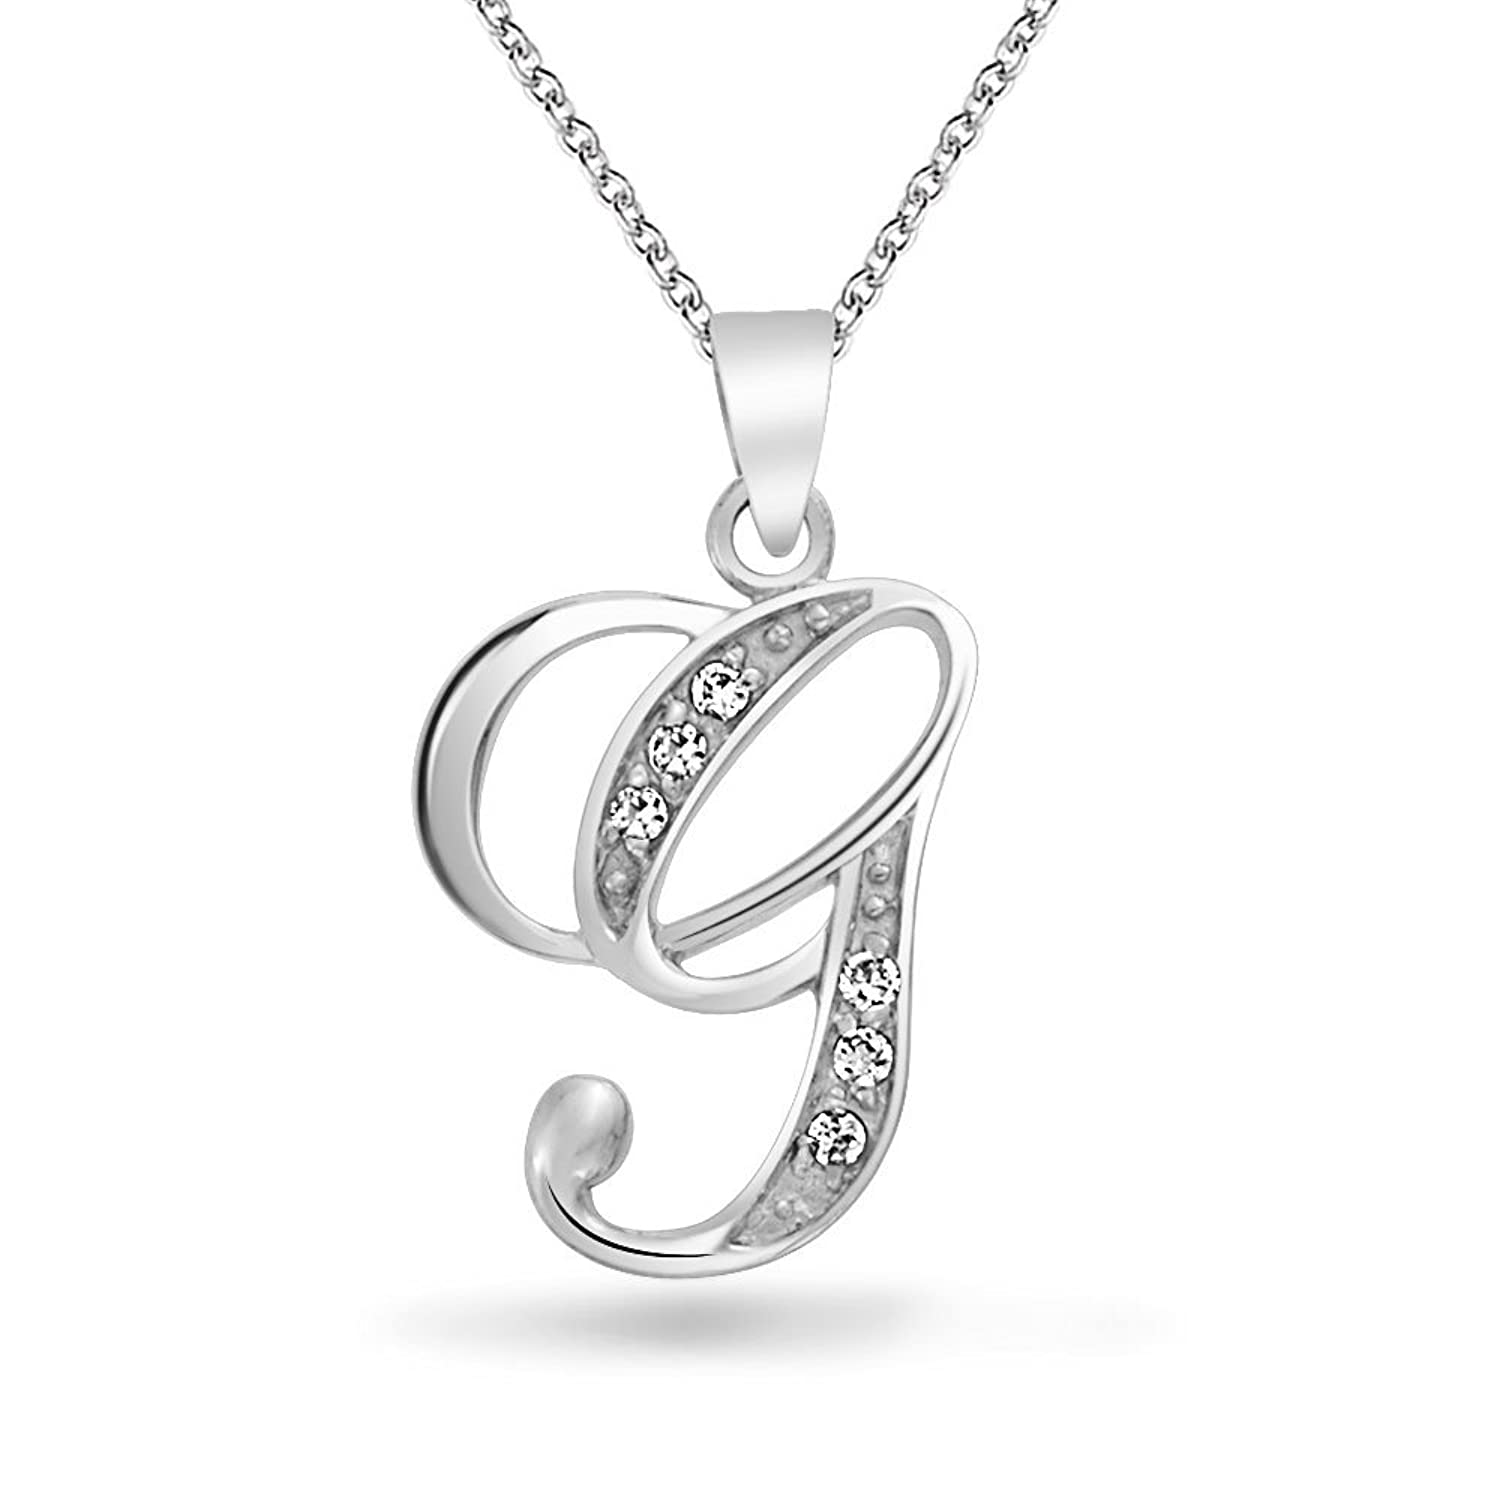 d details shape gold titanium steel letter necklace pendant stylish alphabet